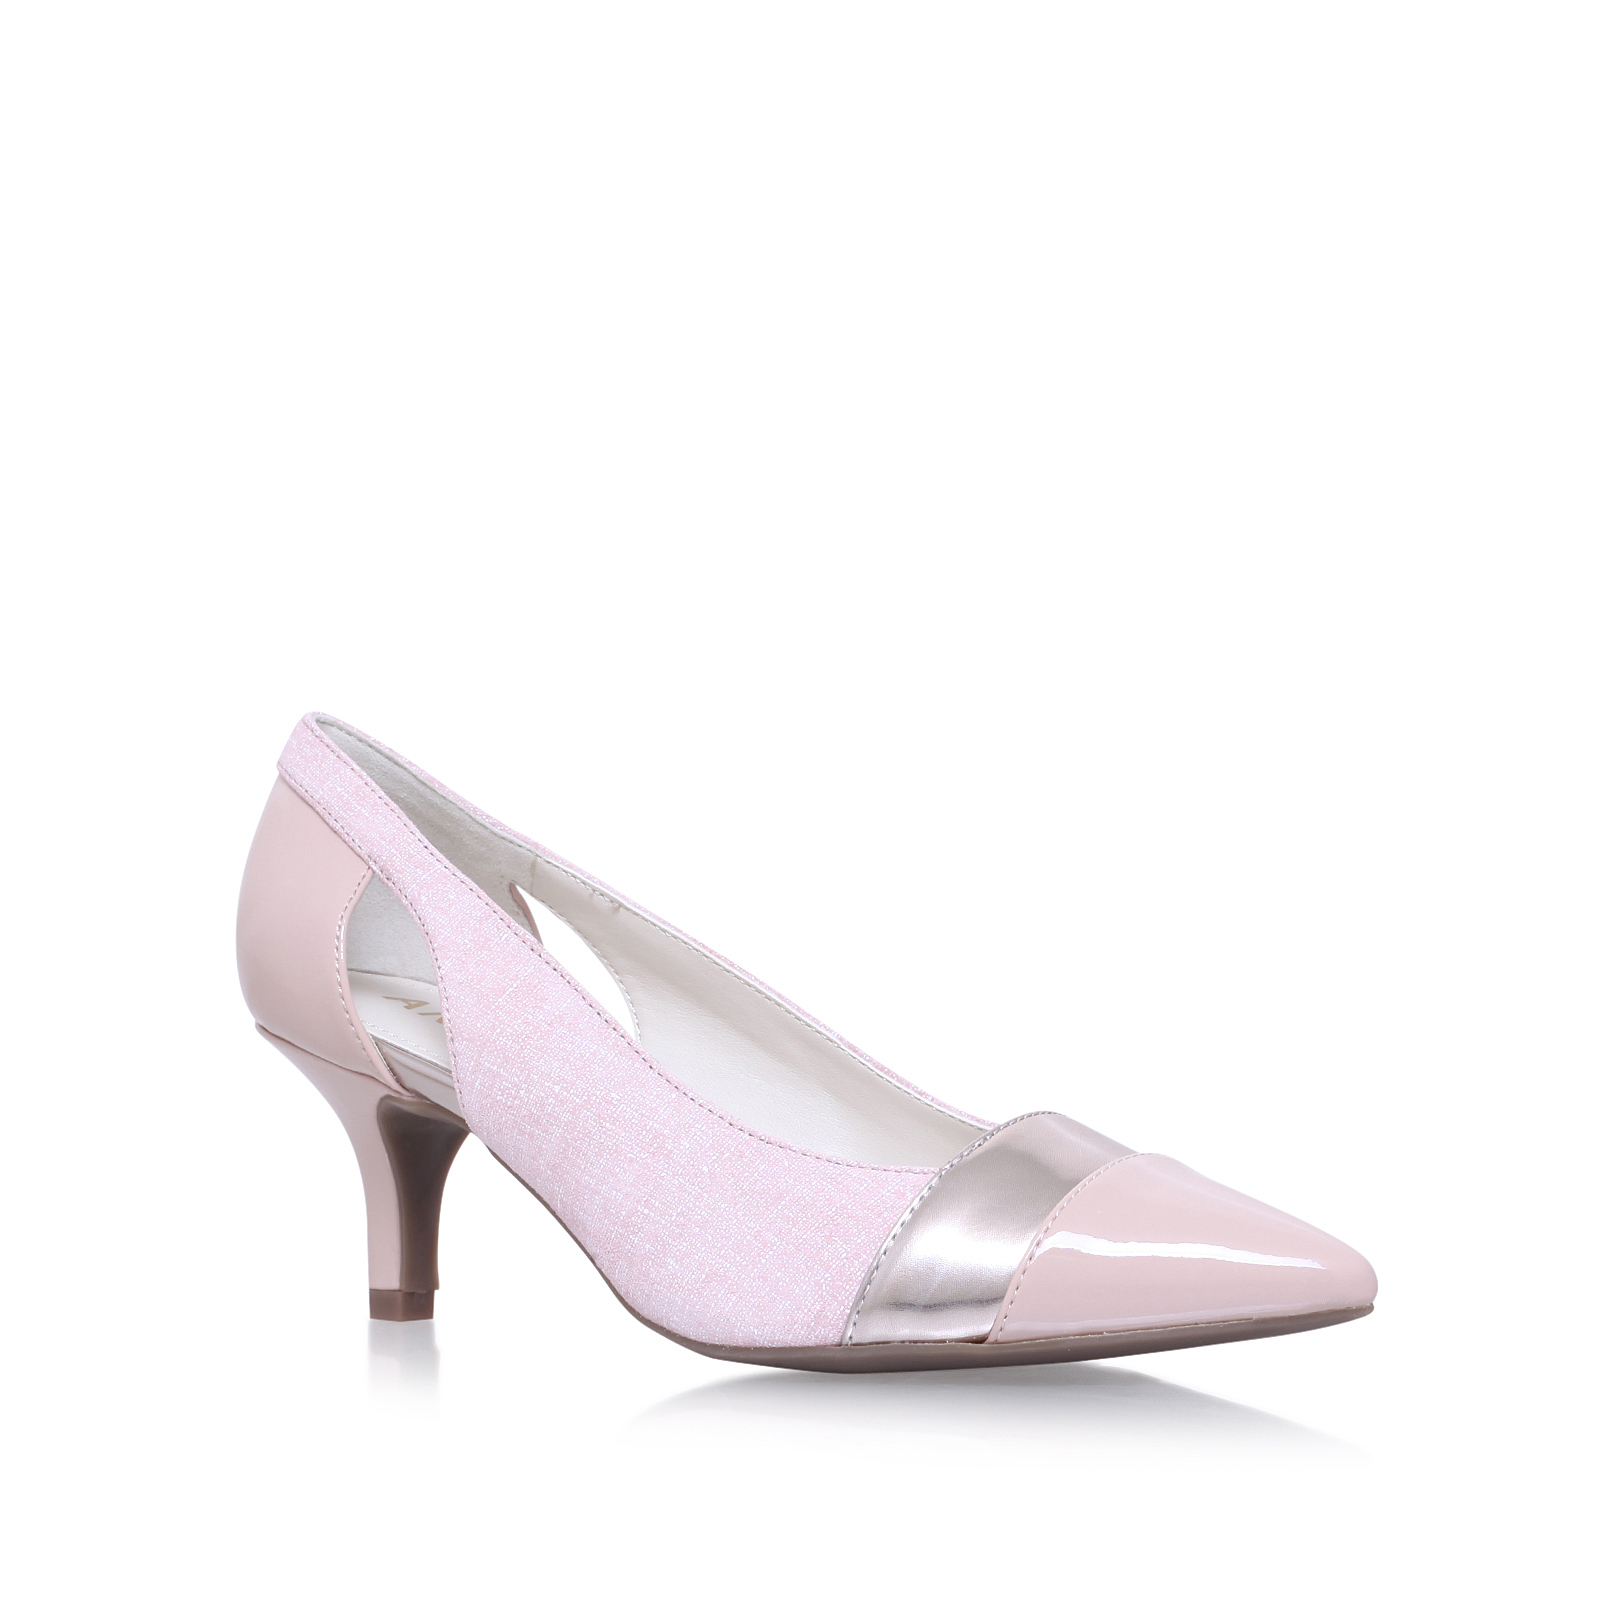 ecb638041b1 FIRST CLASS Anne Klein First Class Pale Pink Leather Mid Heel Court Shoes  by ANNE KLEIN